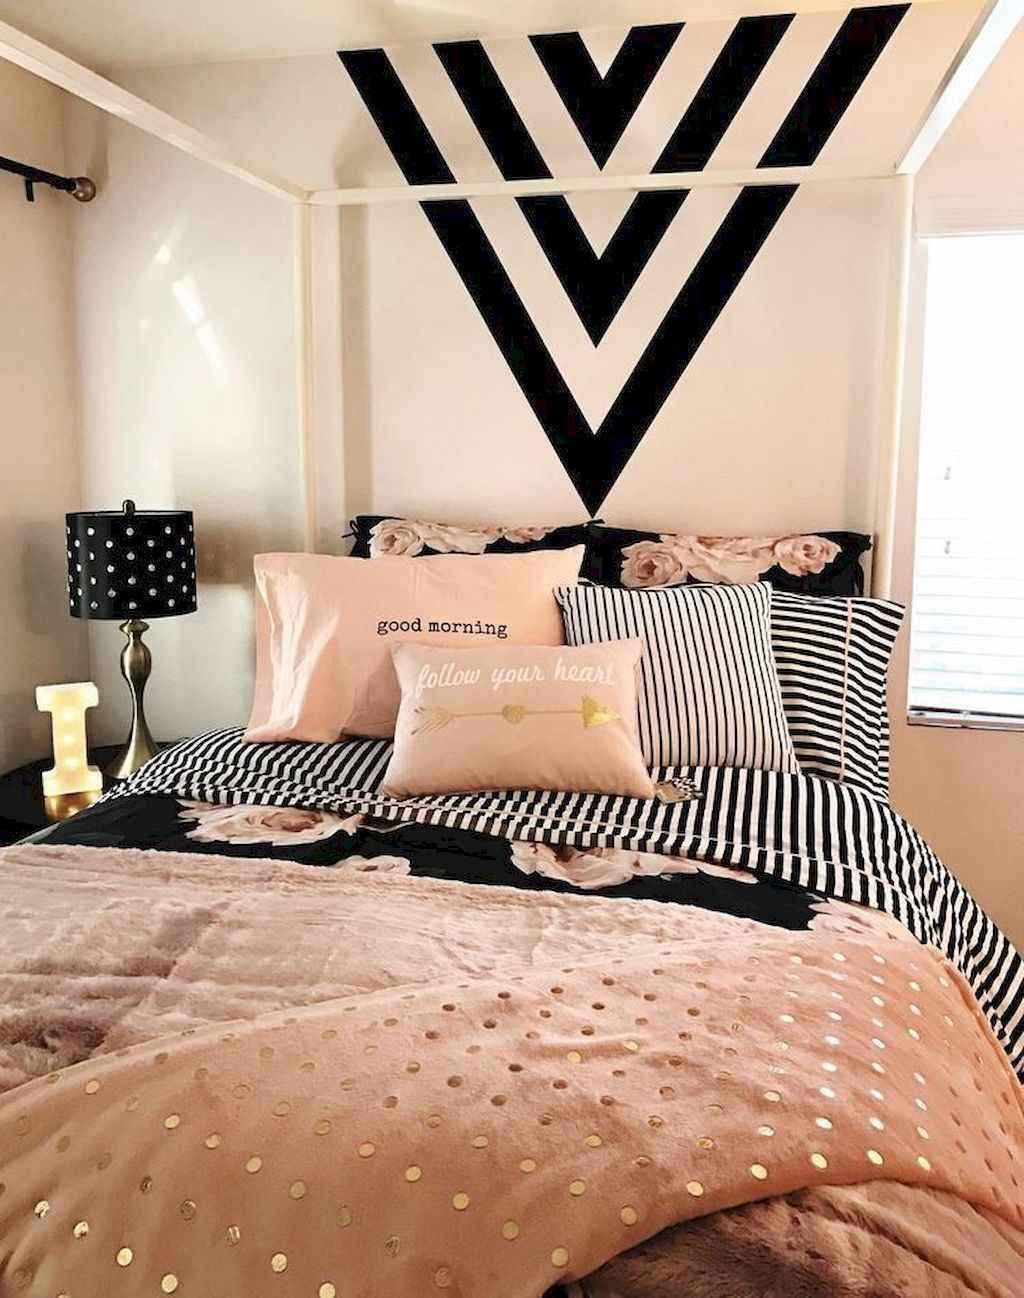 22 Simple Bedroom Decorating Ideas with Beautiful Color images